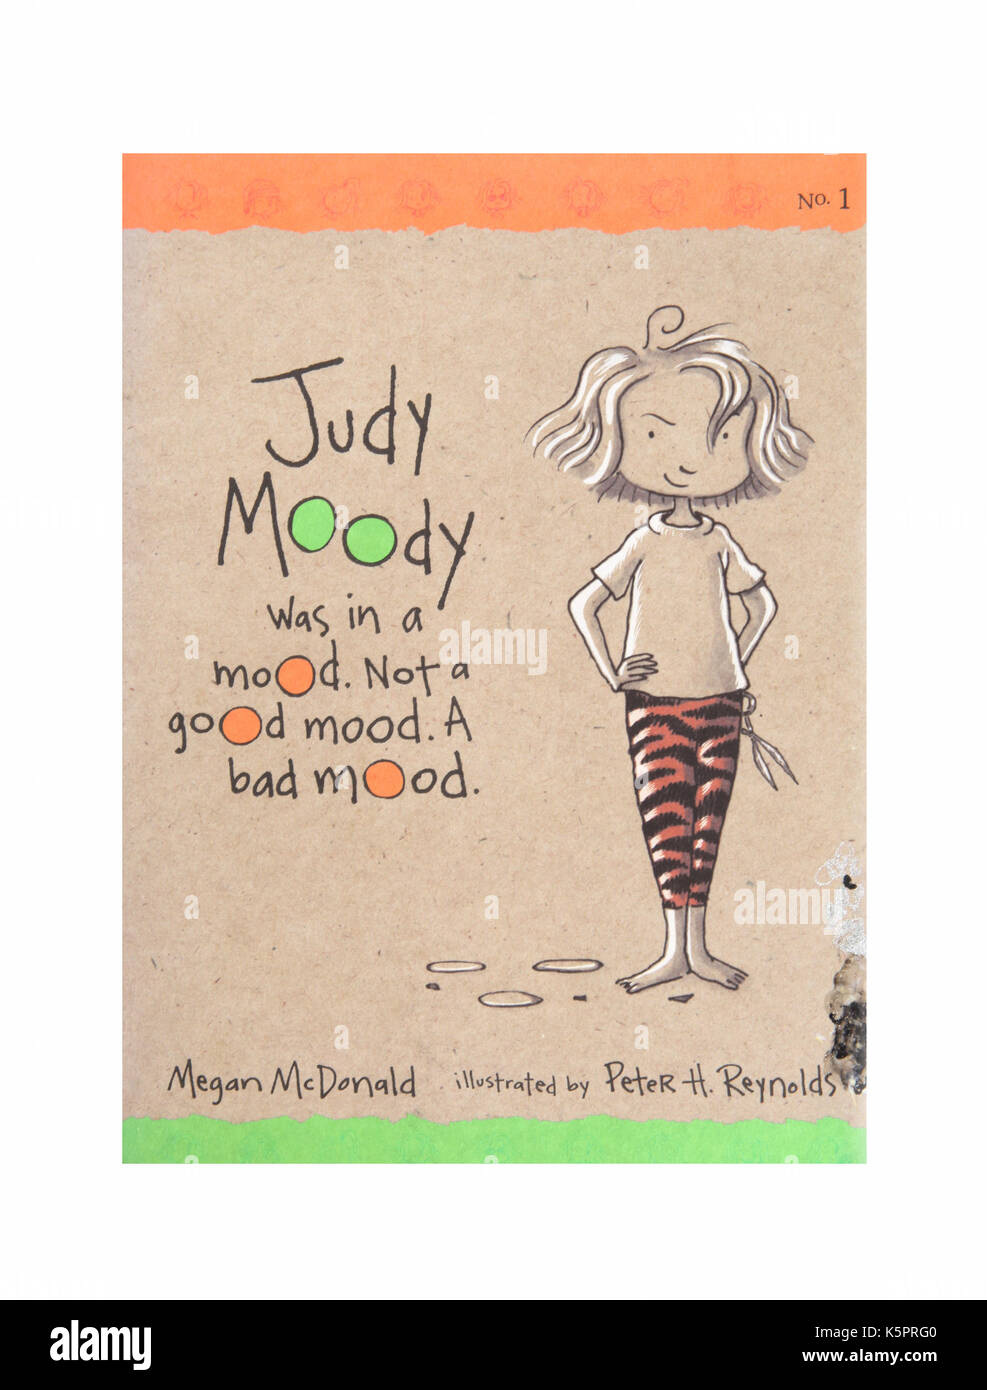 The book Judy Moody was in a mood, not a good mood. A bad mood by Megan McDonald - Stock Image